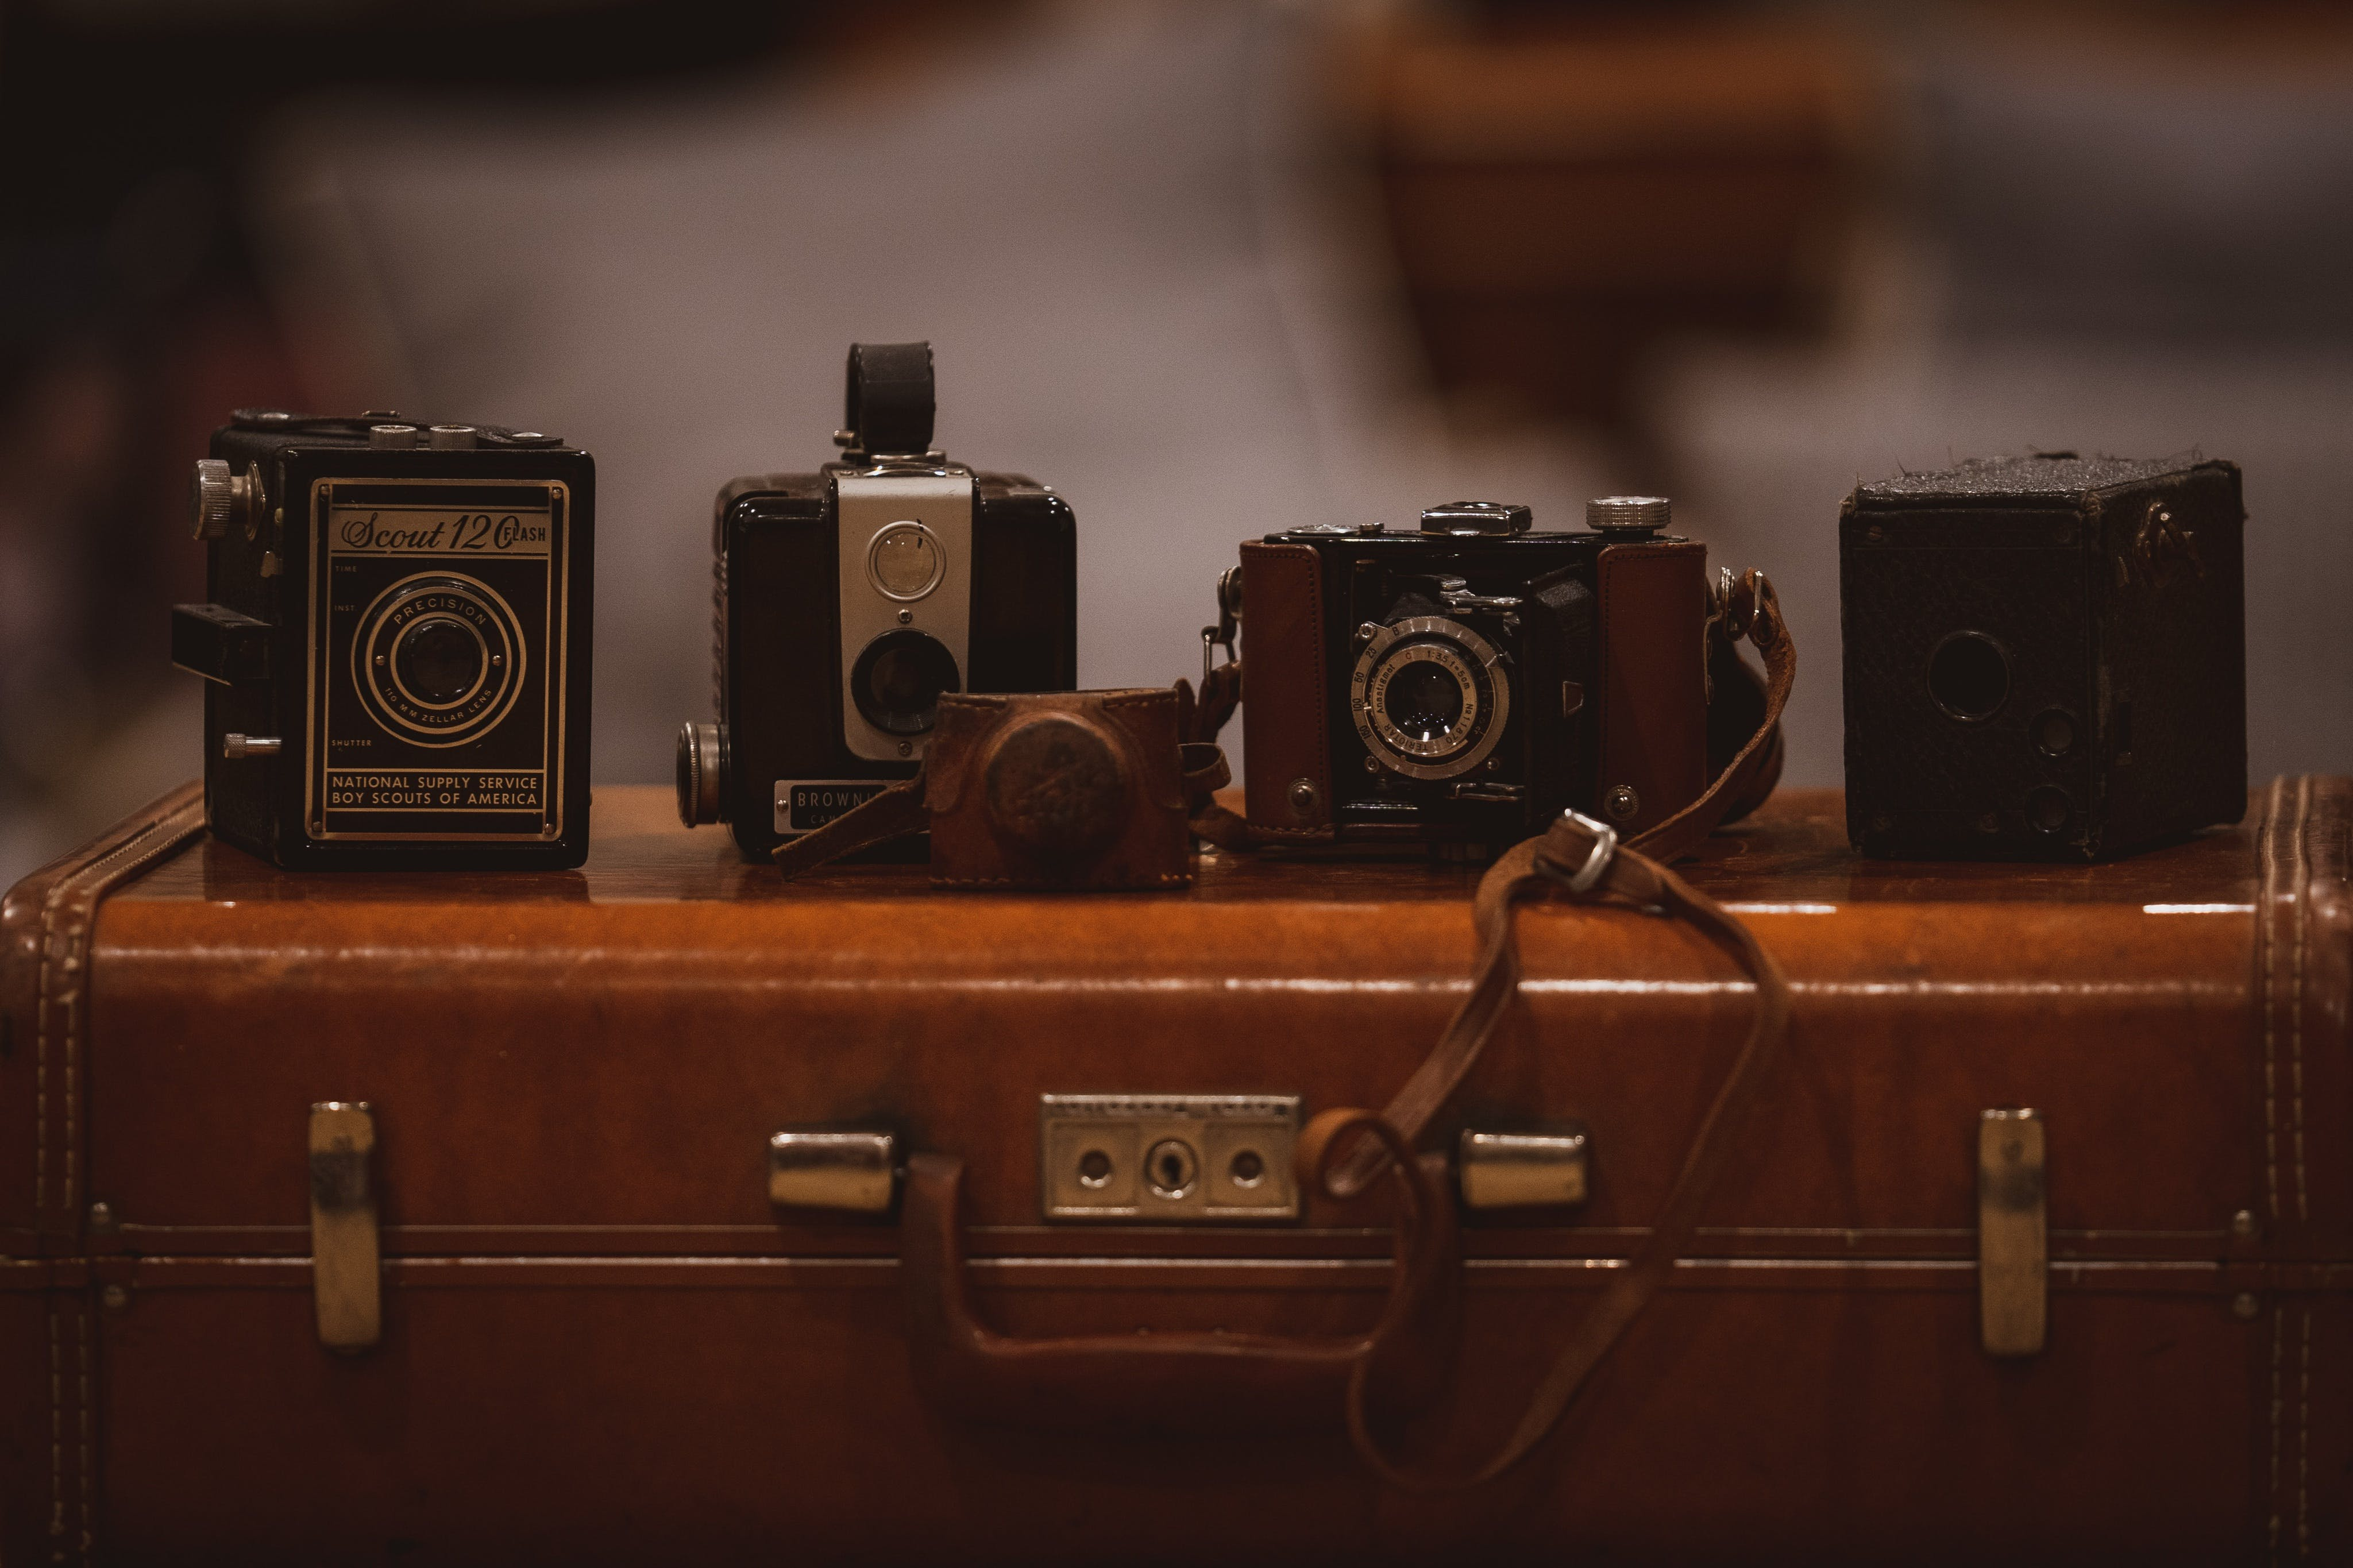 Four Assorted-color Cameras on Brown Suitfcase